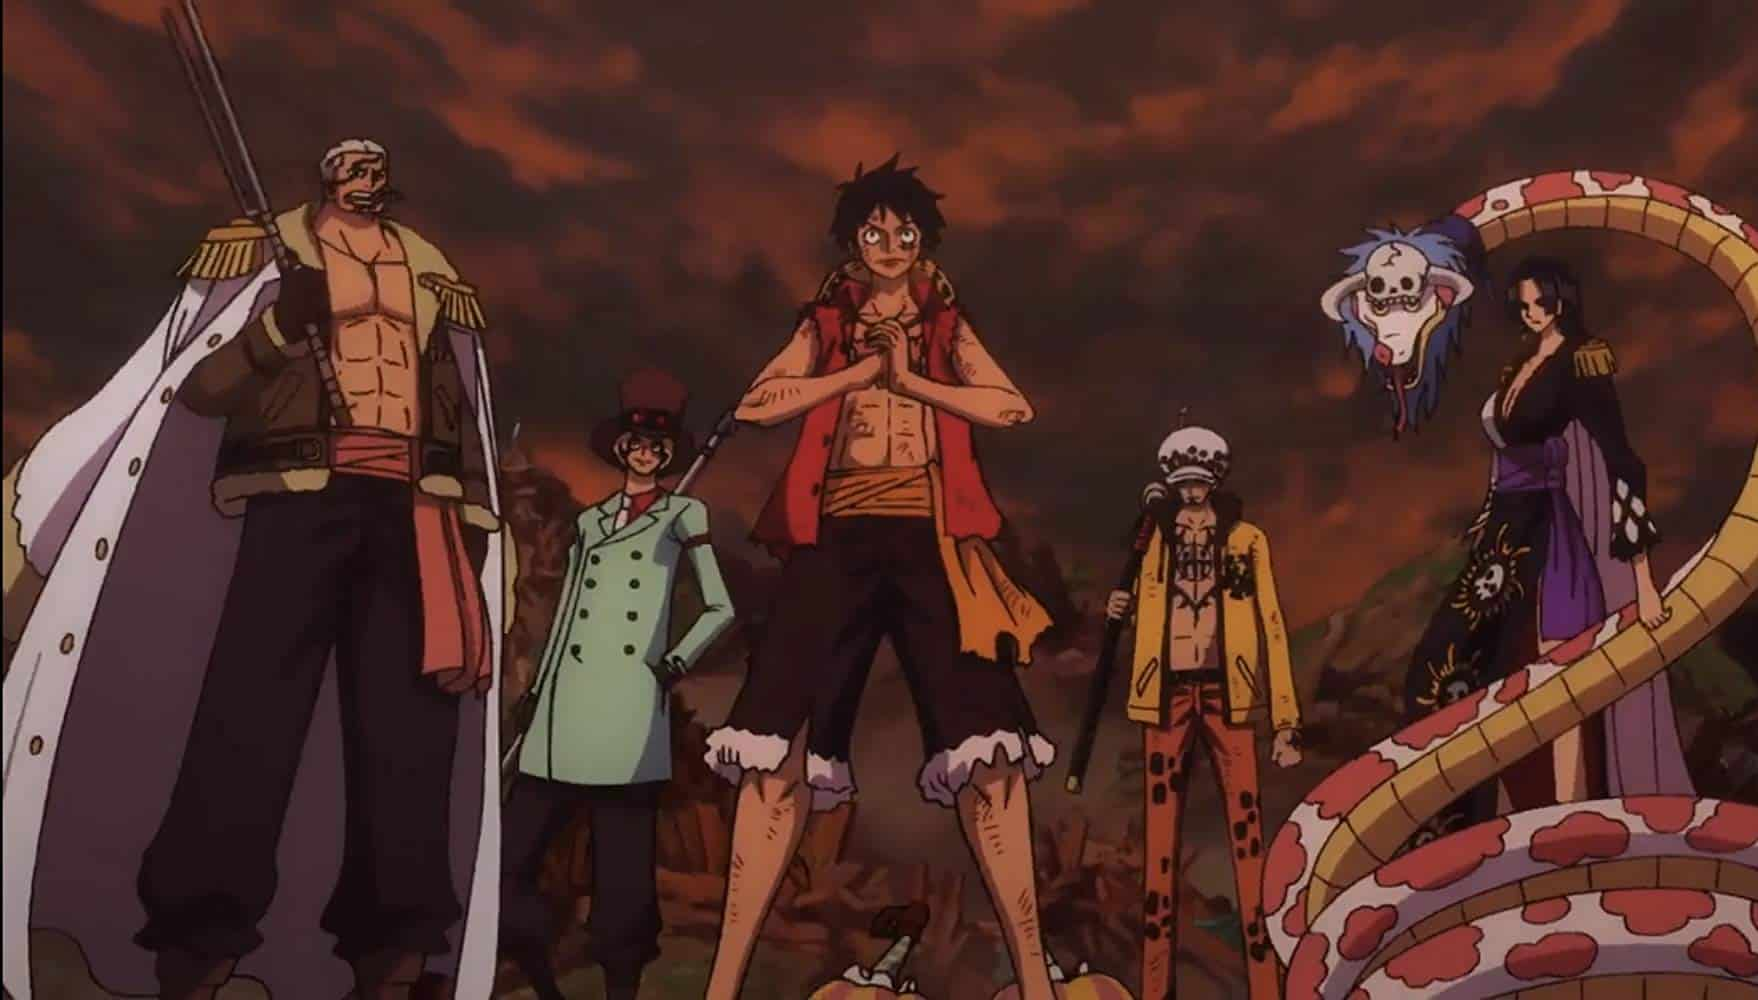 One Piece Stampede Kino Deutschland